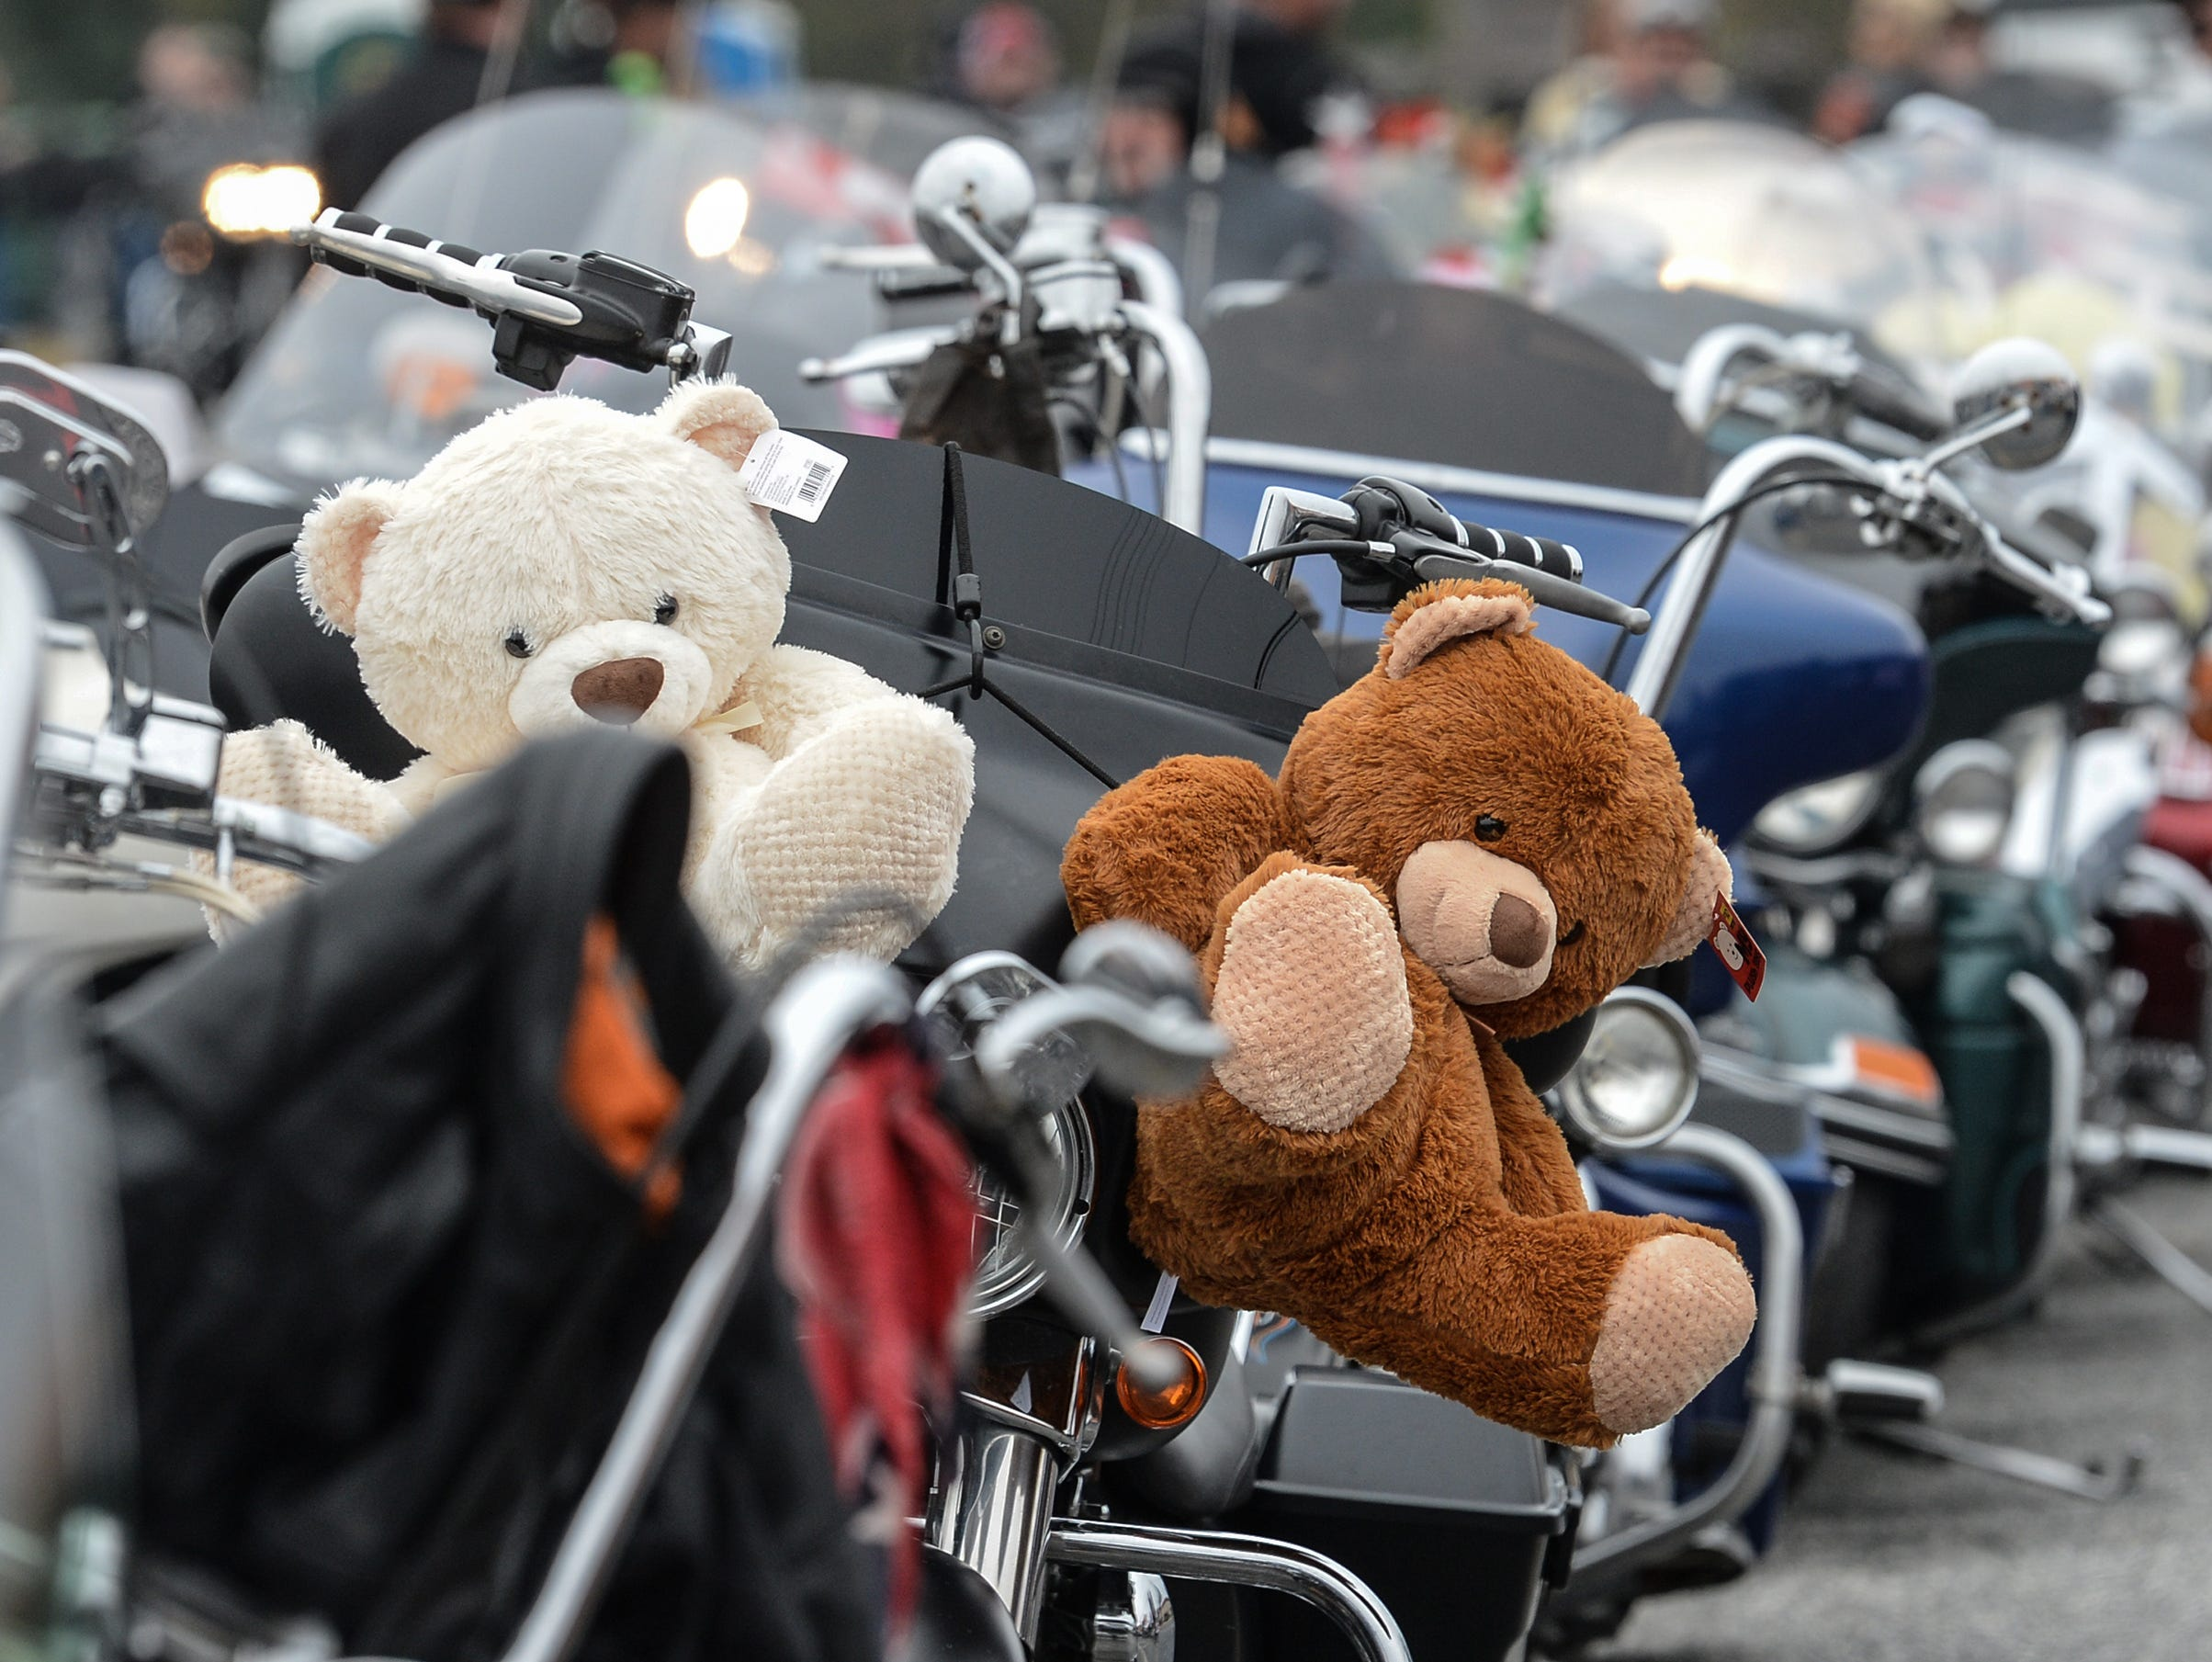 The Anderson Toy Parade, in memory of Charles and Diane Bolt, the 38th Jack Hurley Toy Parade in Anderson on Sunday, November 25, 2018. The parade started at White Jones Hardware parking lot in the Watson Village, followed along Main Street to the Civic Center of Anderson where toys were donated to Anderson Cares and Shares.